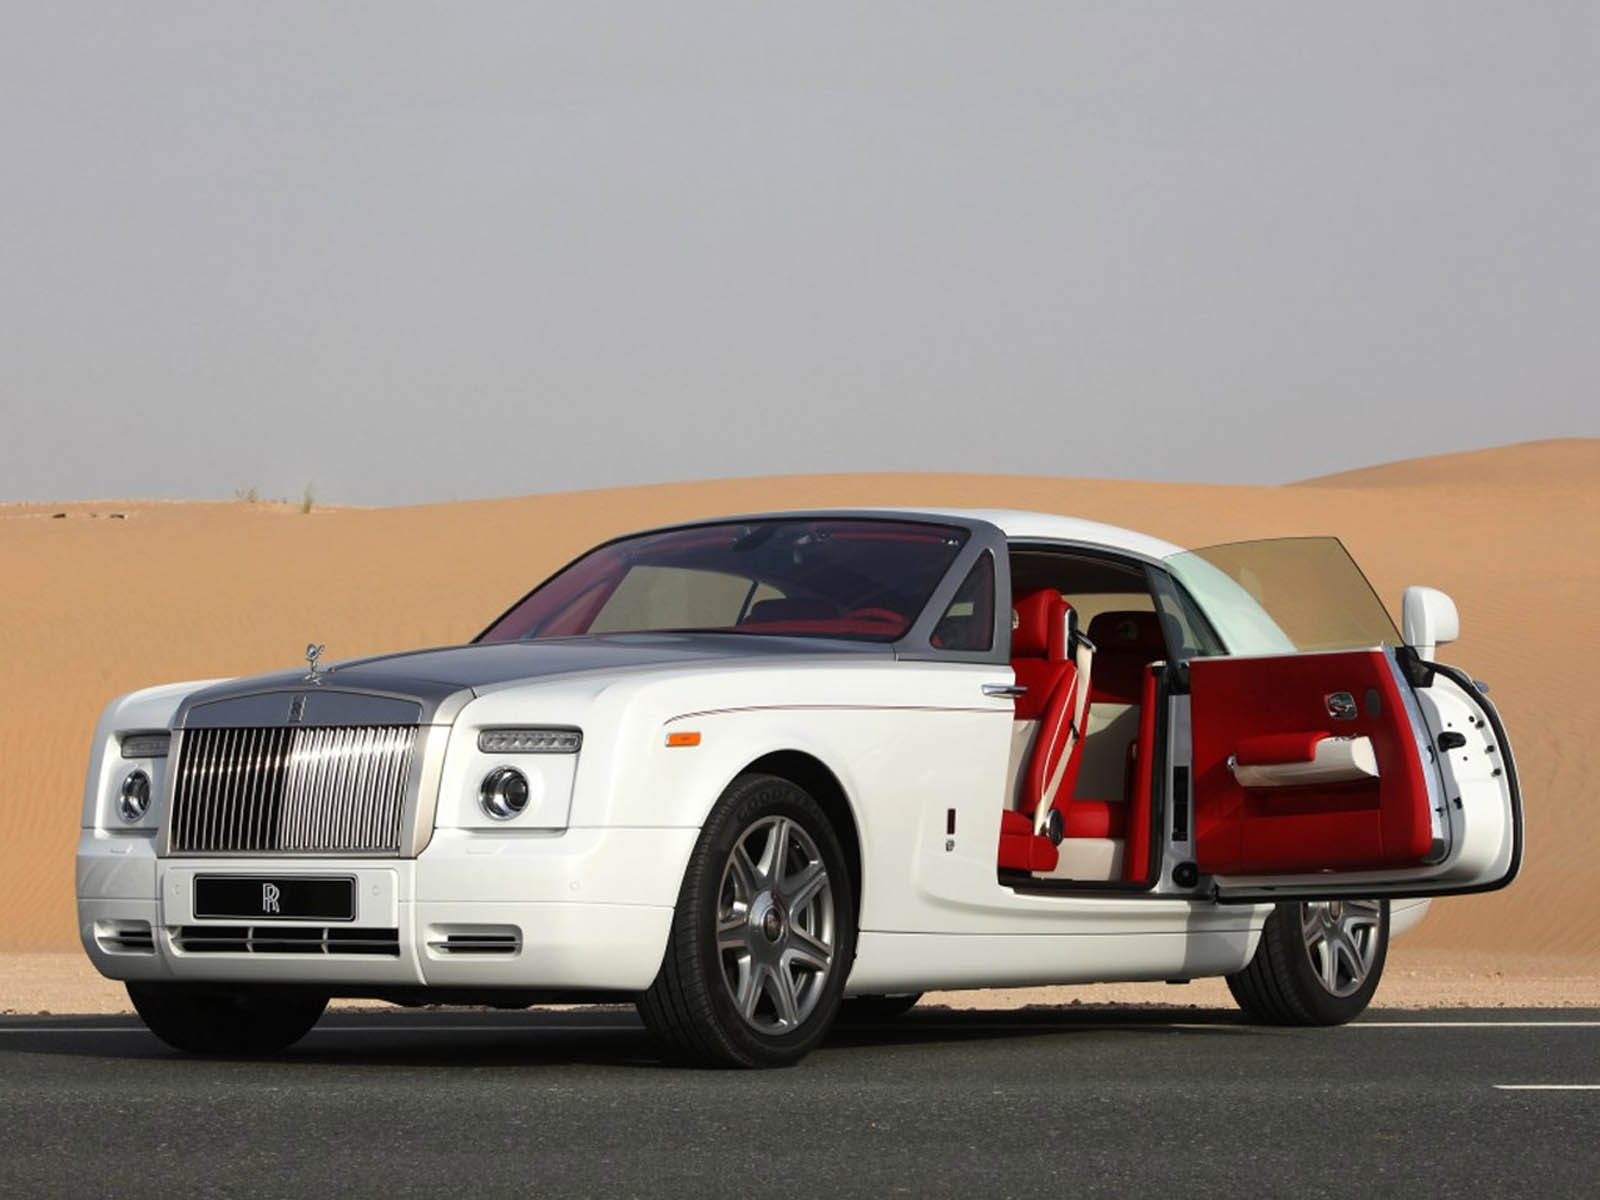 Free Download Wallpapers Rolls Royce Phantom Coupe Car